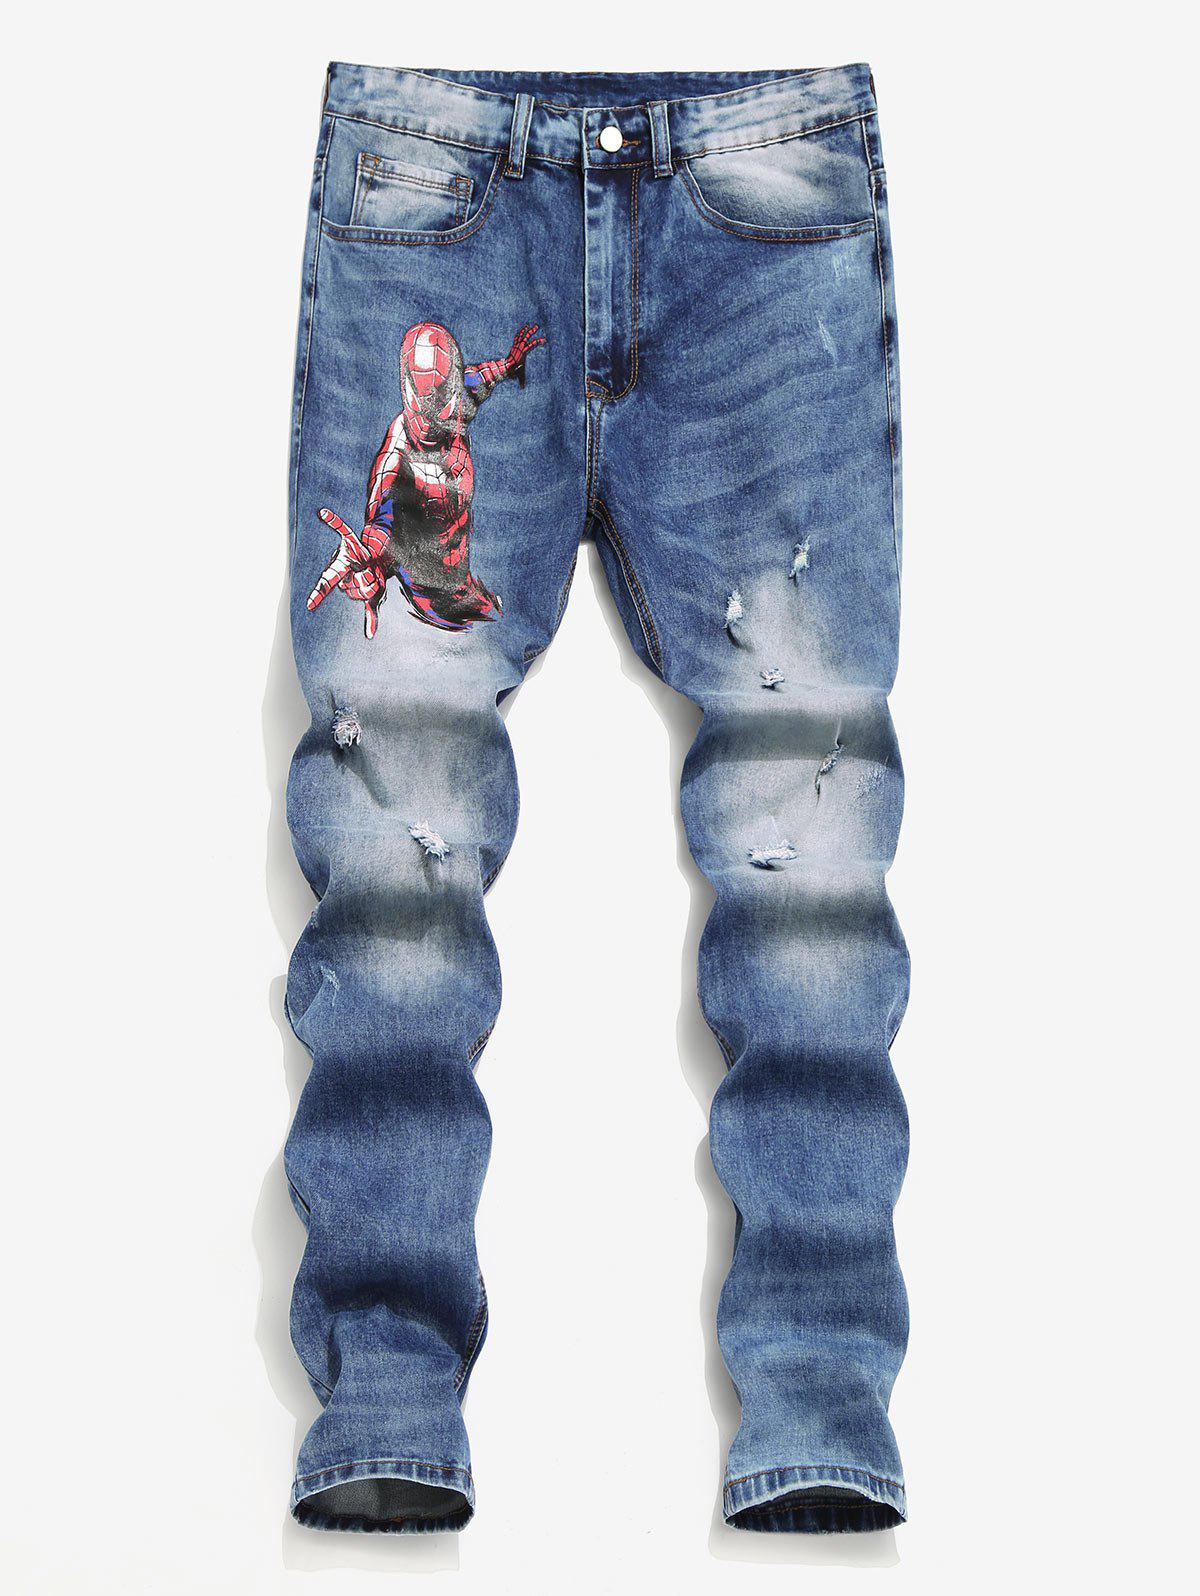 Fancy Marvel Spider-Man Star Ripped Jeans